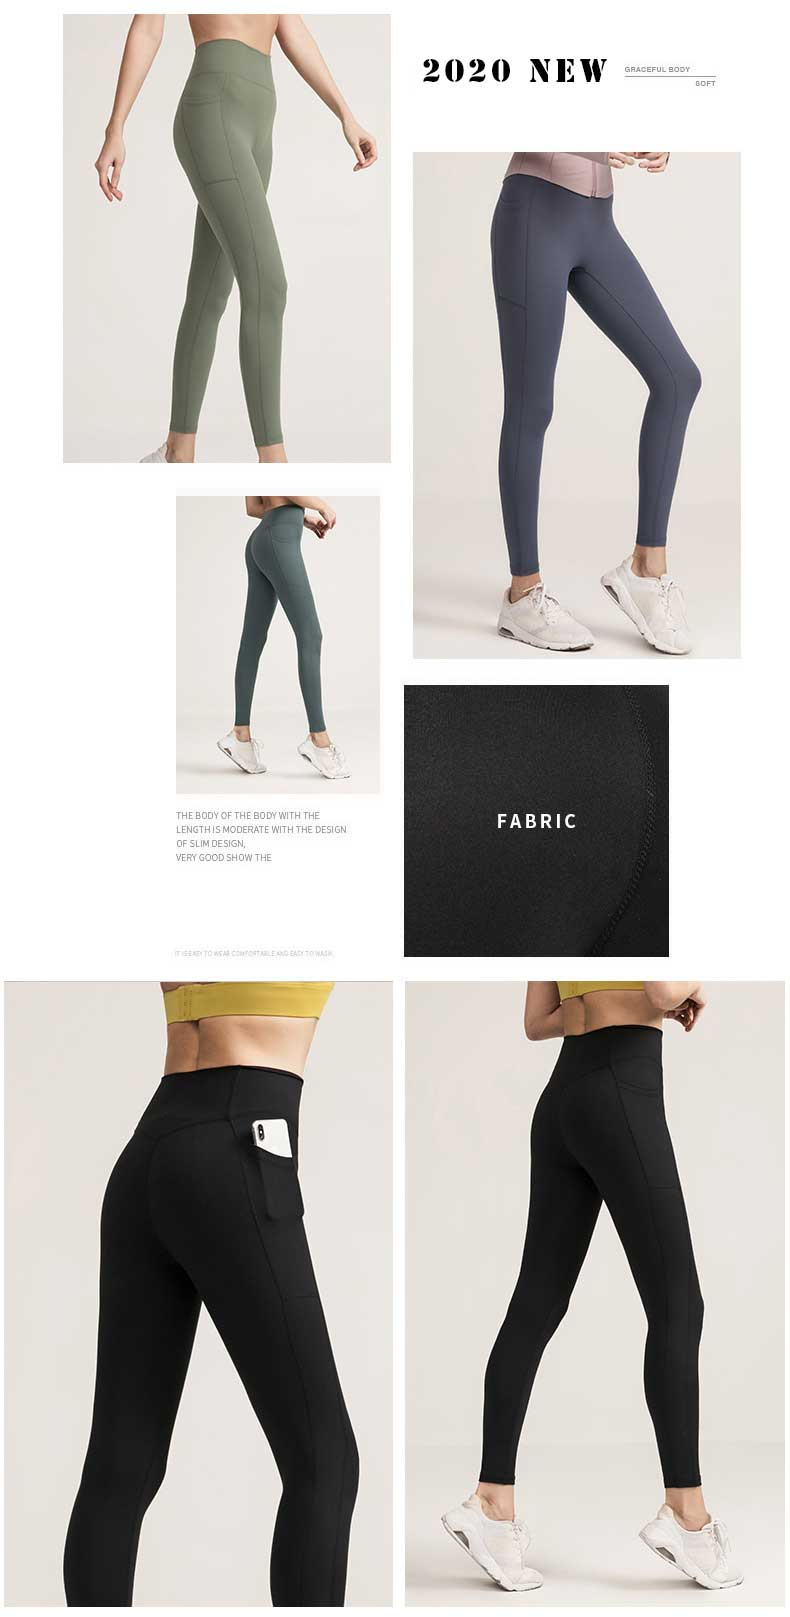 90% polyamide + 10% spandex is designed with elastic side stretch, which can meet the needs of any sports training, whether it is running, yoga, fitness or large weight anaerobic exercise